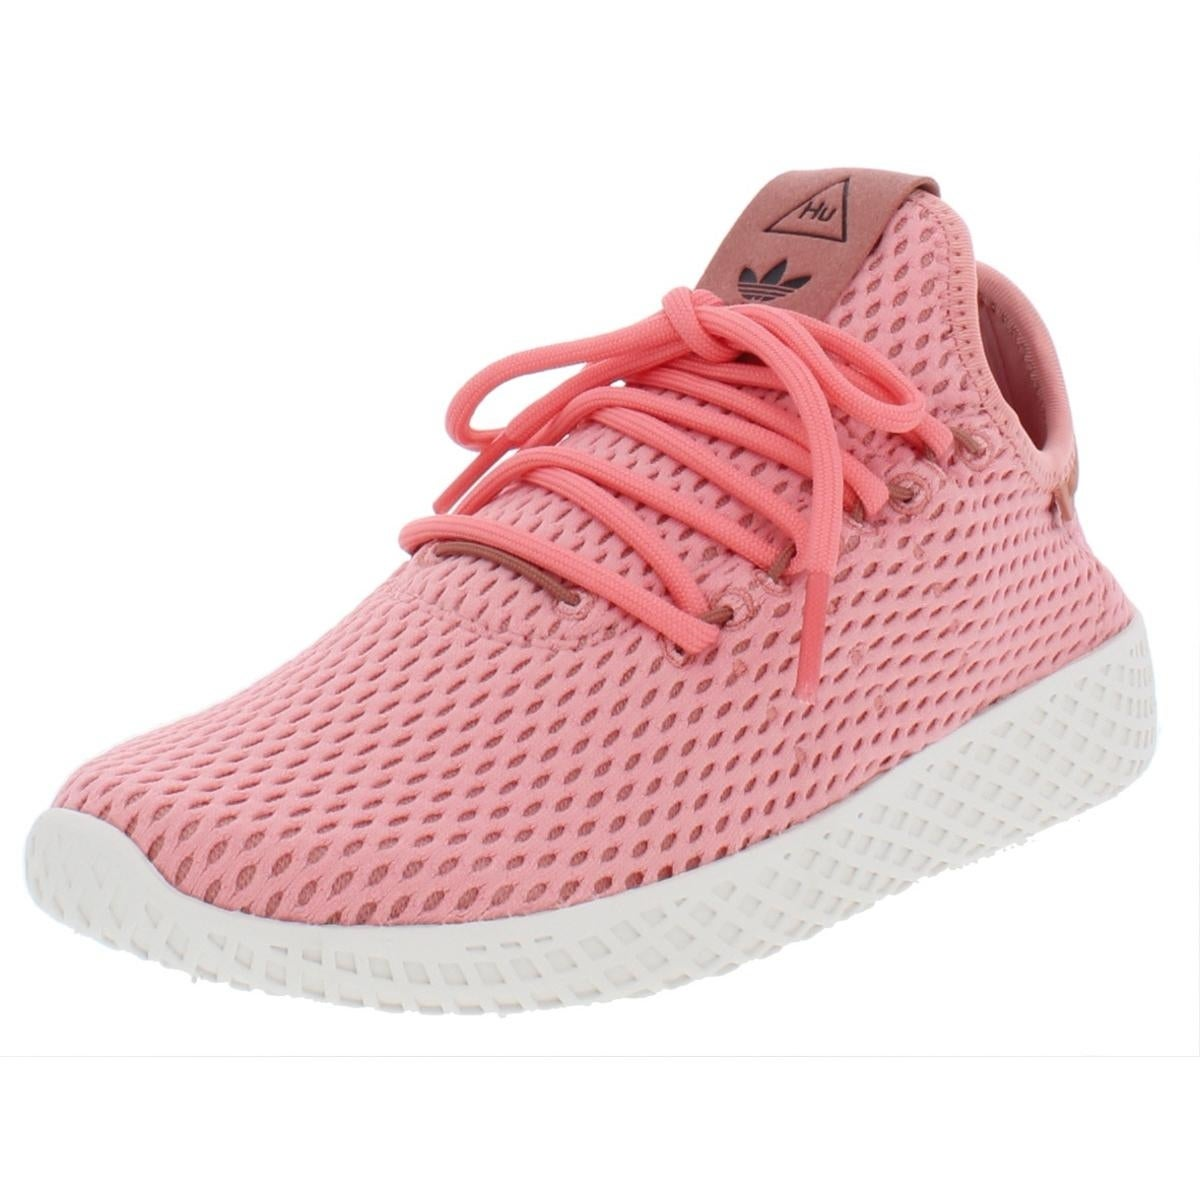 netted chaussures chaussures adidas netted adidas chaussures netted adidas adidas adidas netted chaussures nP0w8XOk